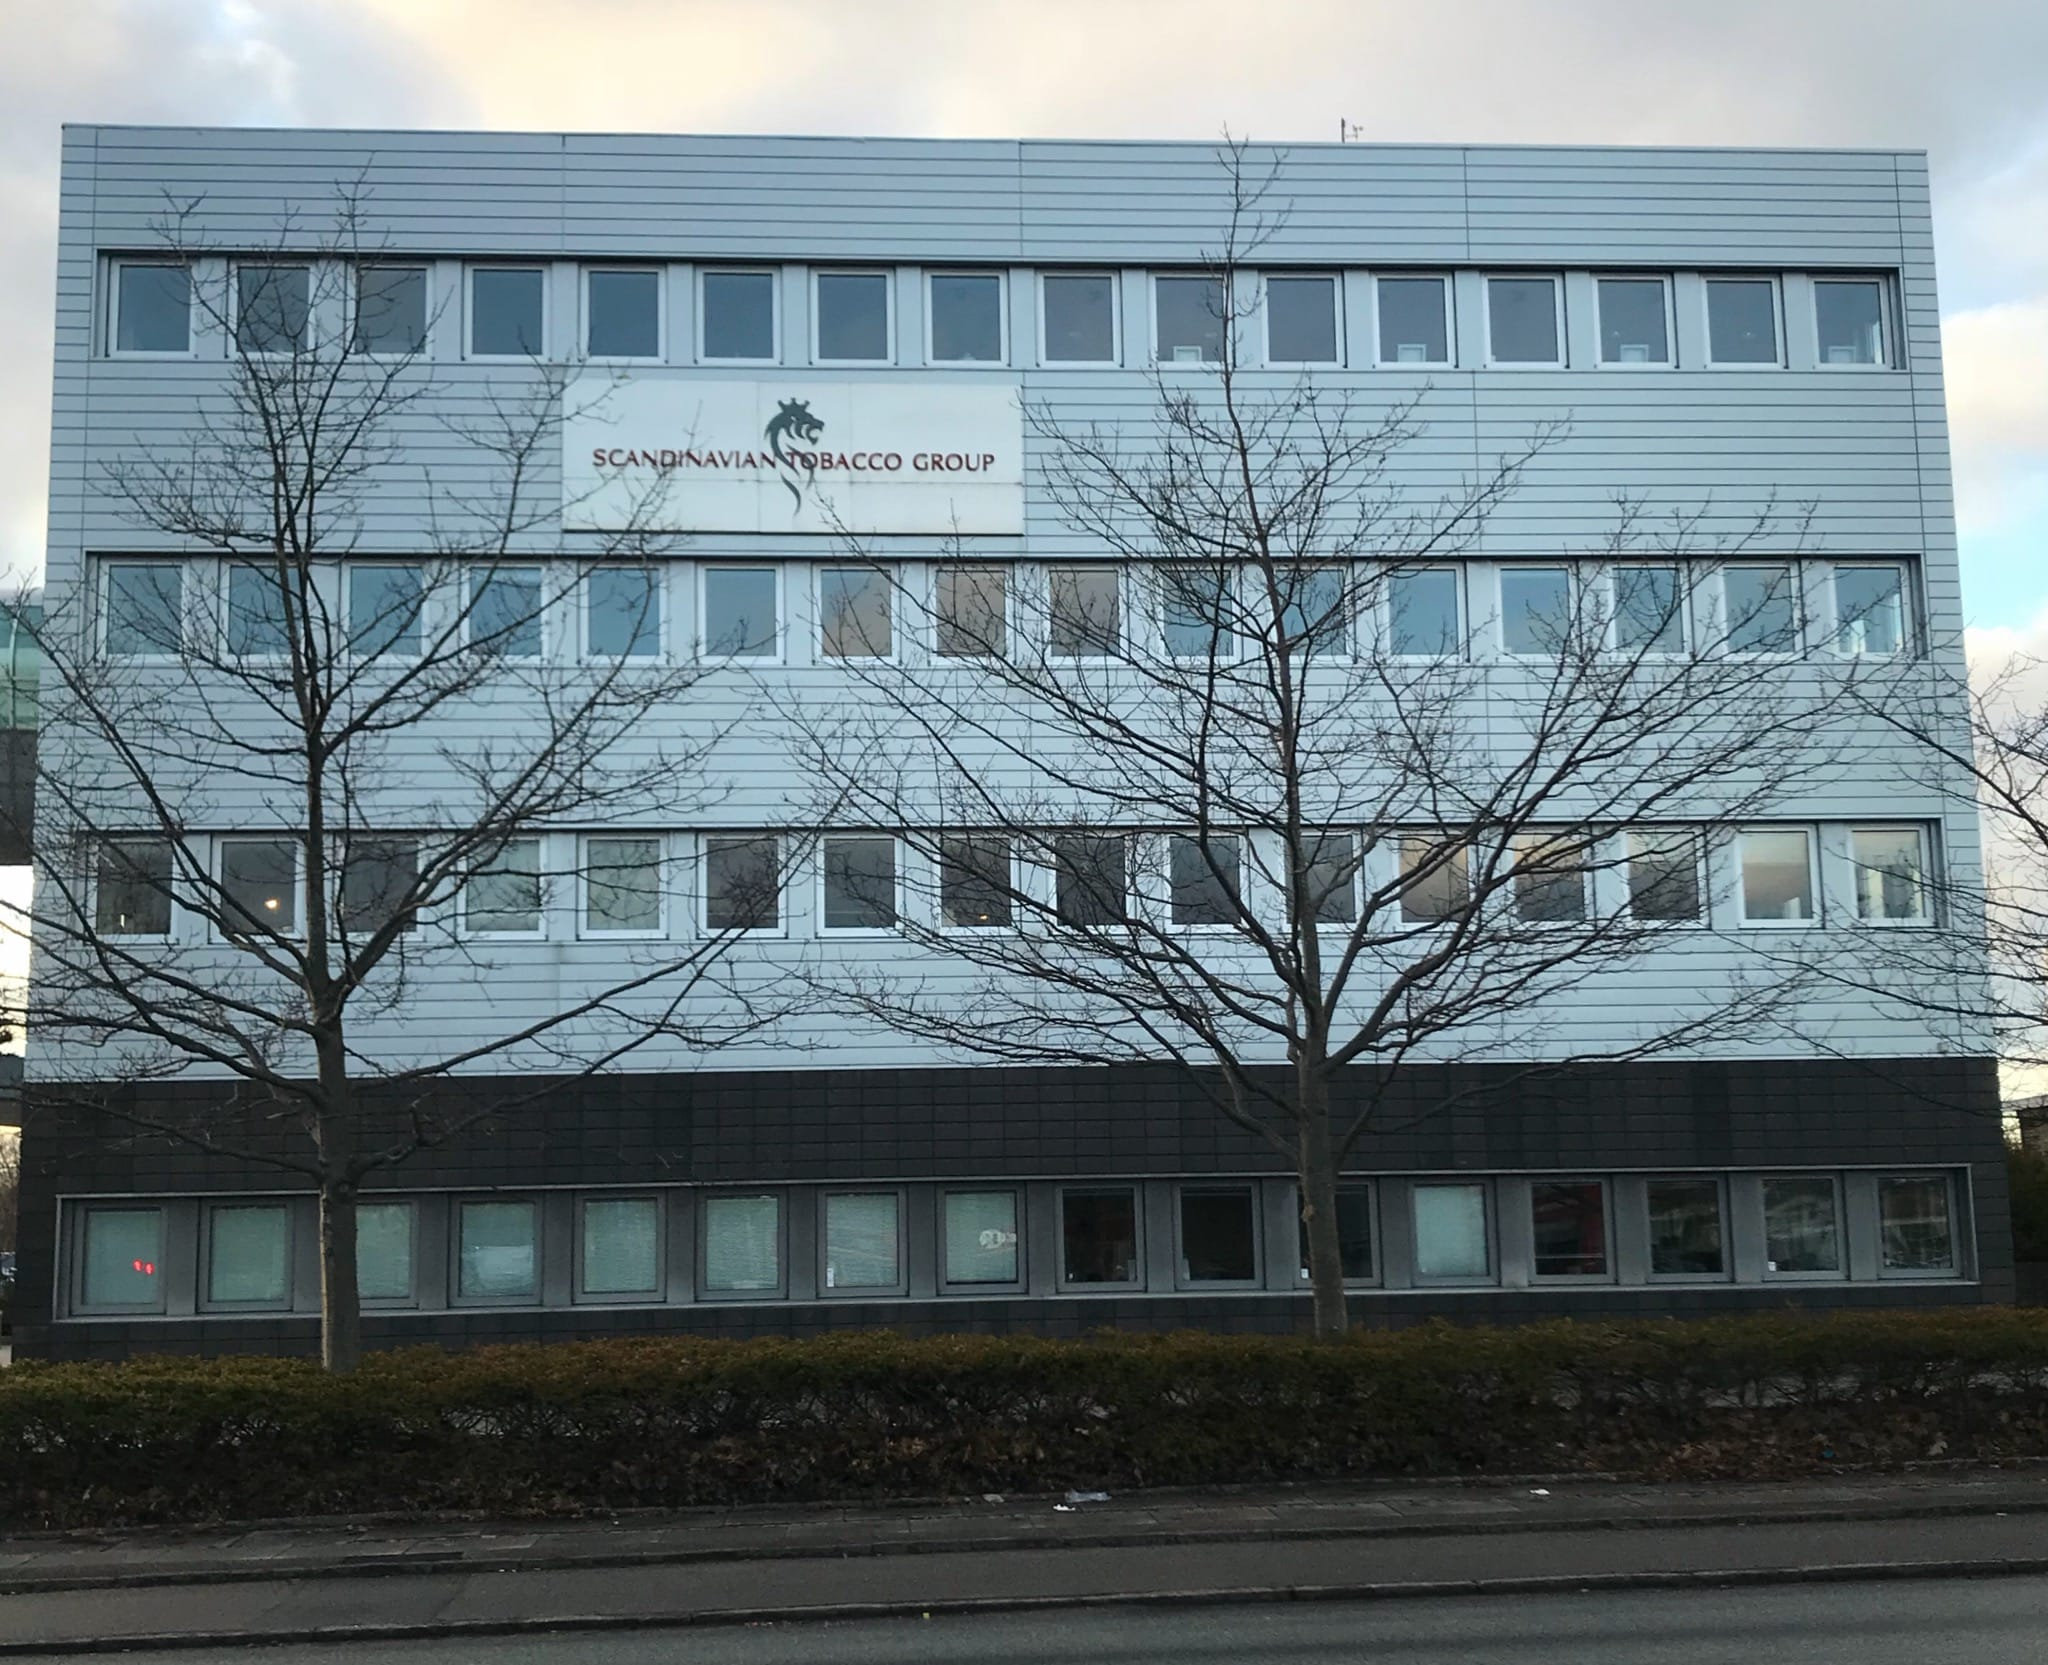 Scandinavian_Tobacco_Group_Headquarters